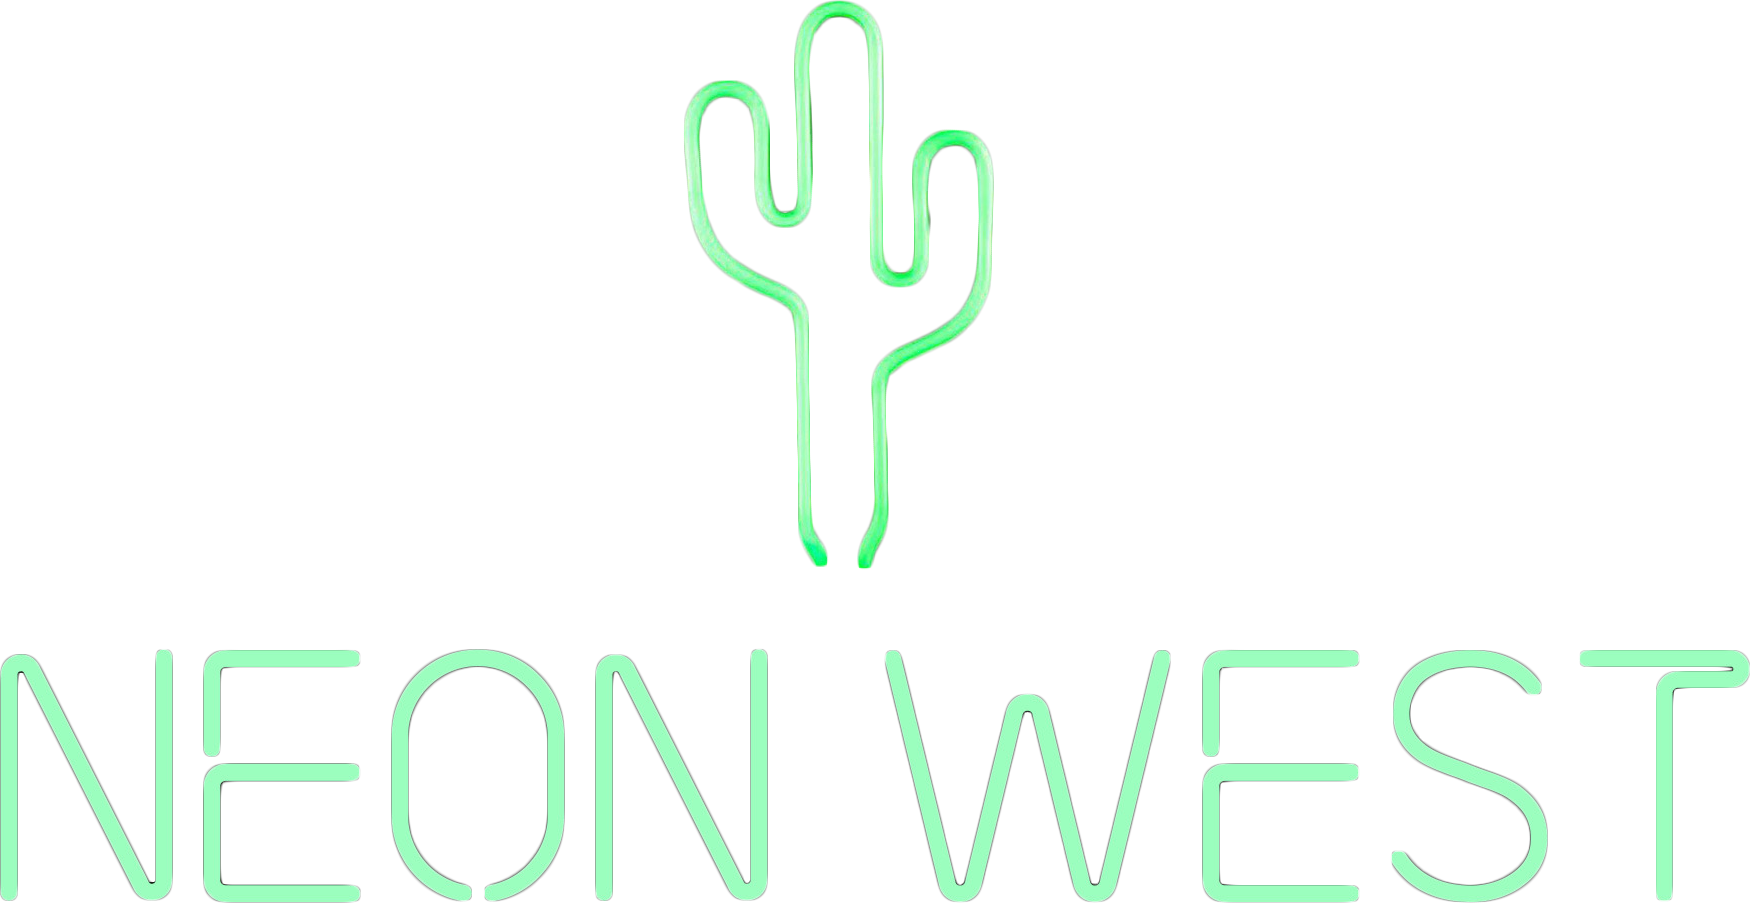 NEONWEST LOGO.png